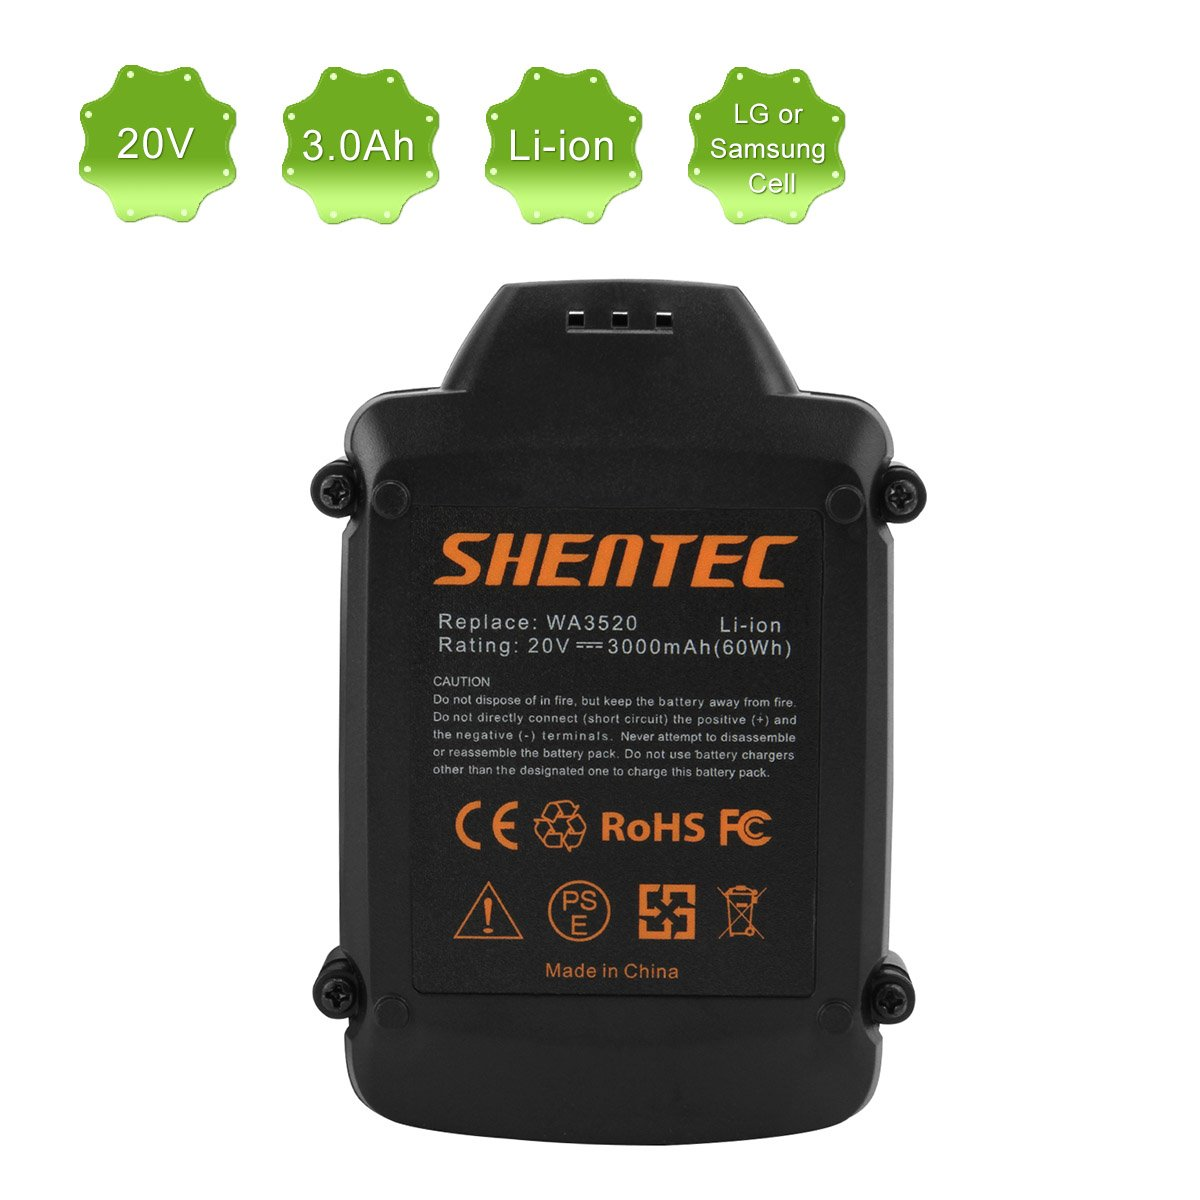 Shentec 3.0Ah 20V Battery for Worx WA3520 Replace for WORX WG151s WG155s WG251s WG540s WG890 WG891, Lithium 20V Worx Battery by Shentec (Image #5)